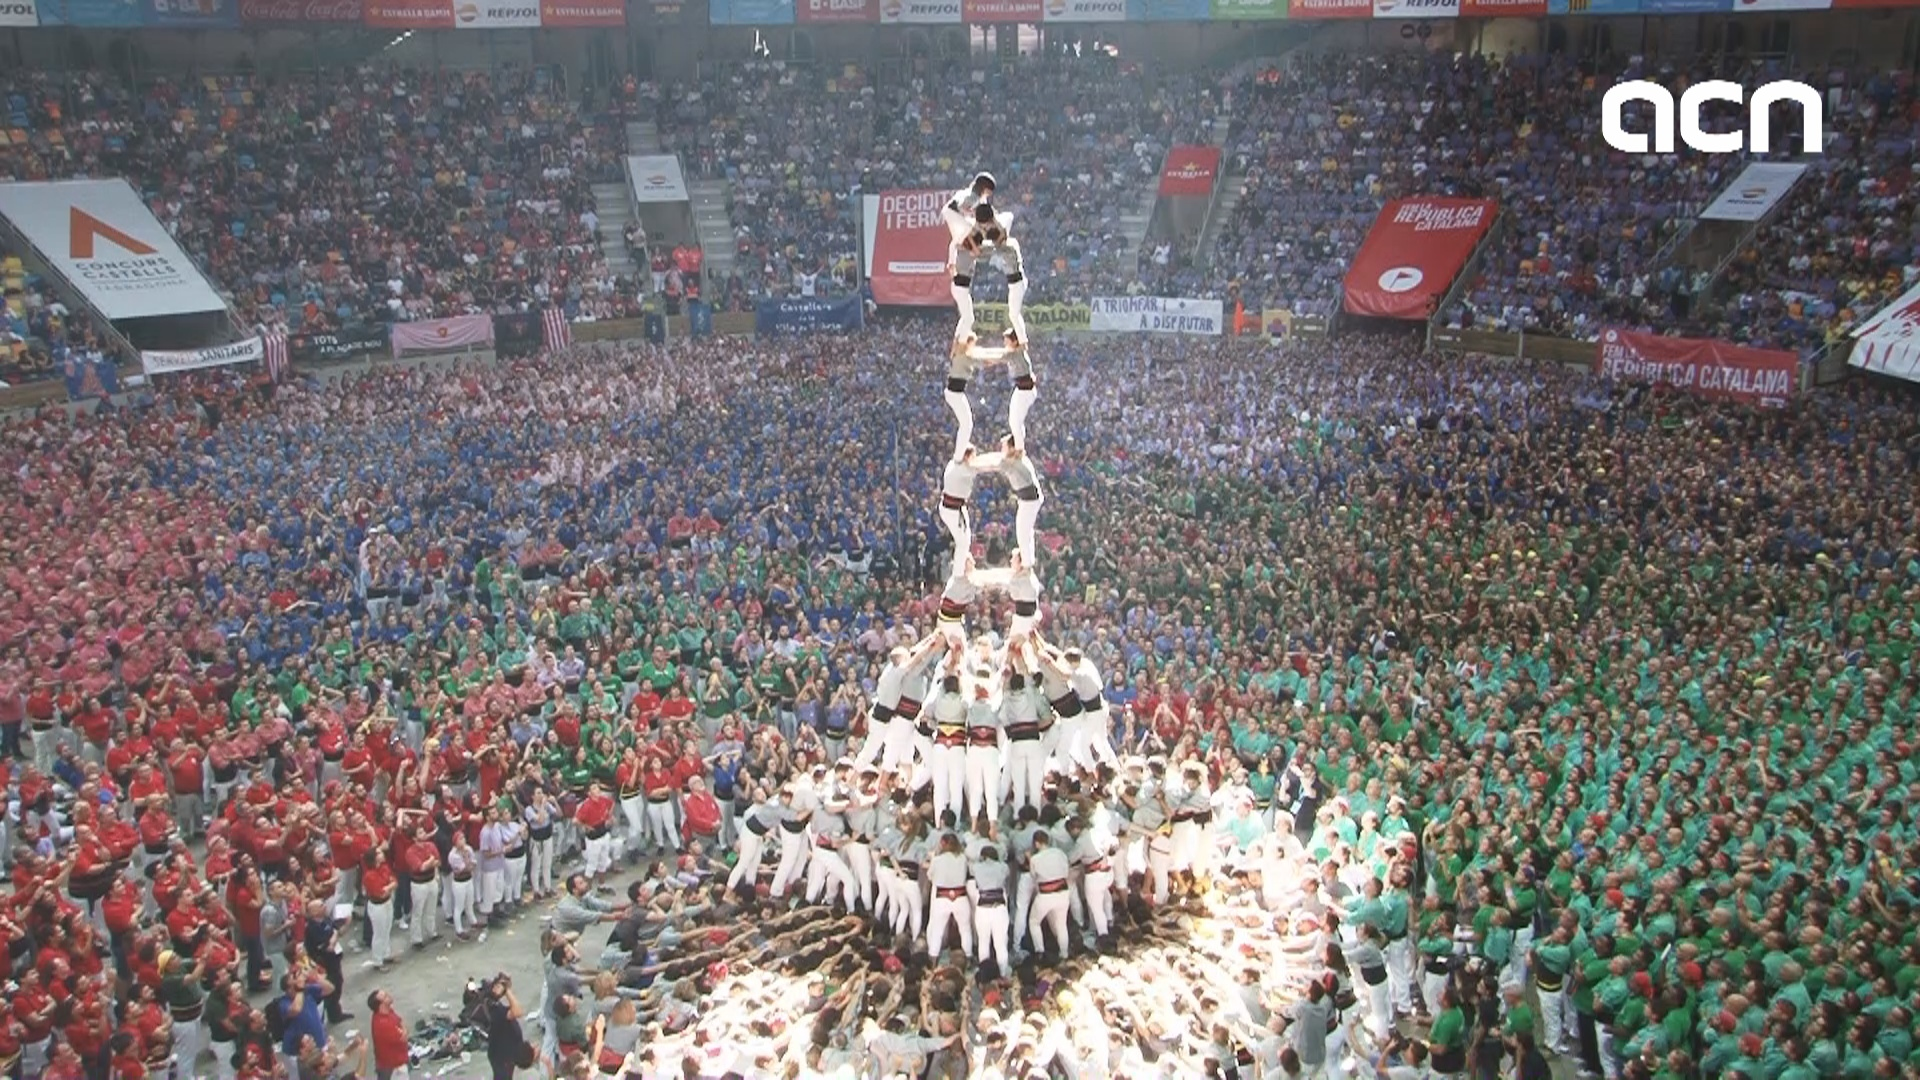 Vella de Valls, winner of Tarragona human tower competition